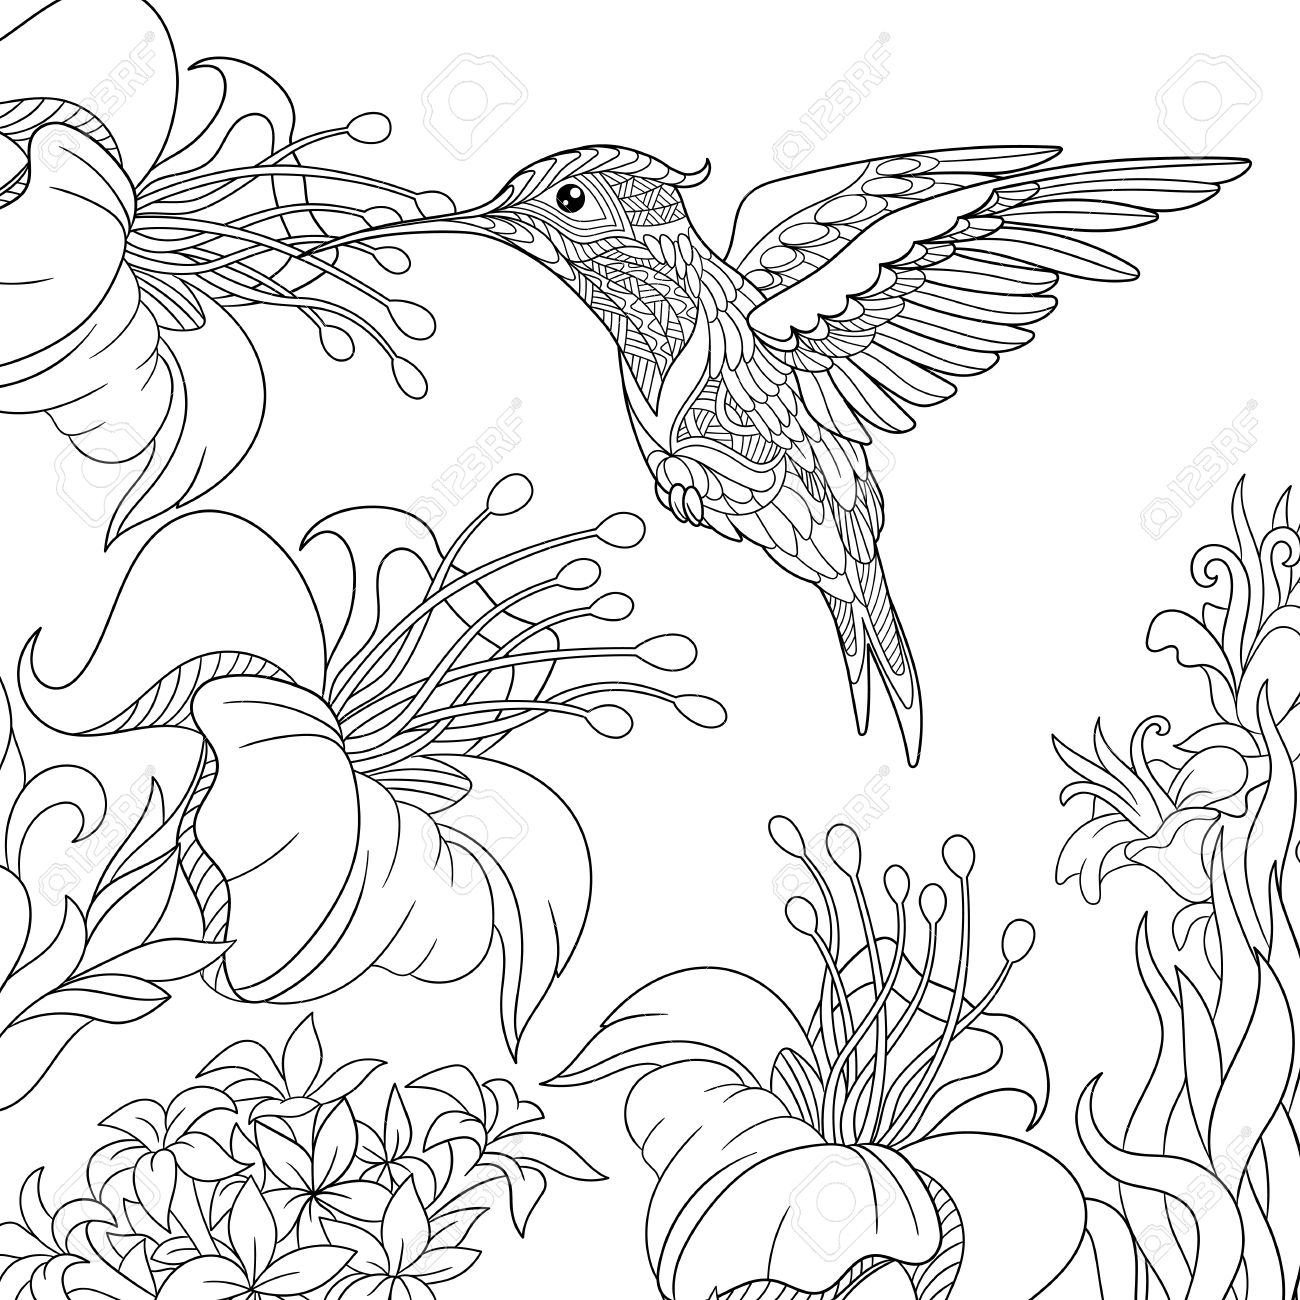 coloring page of hummingbird and hibiscus flowers freehand sketch